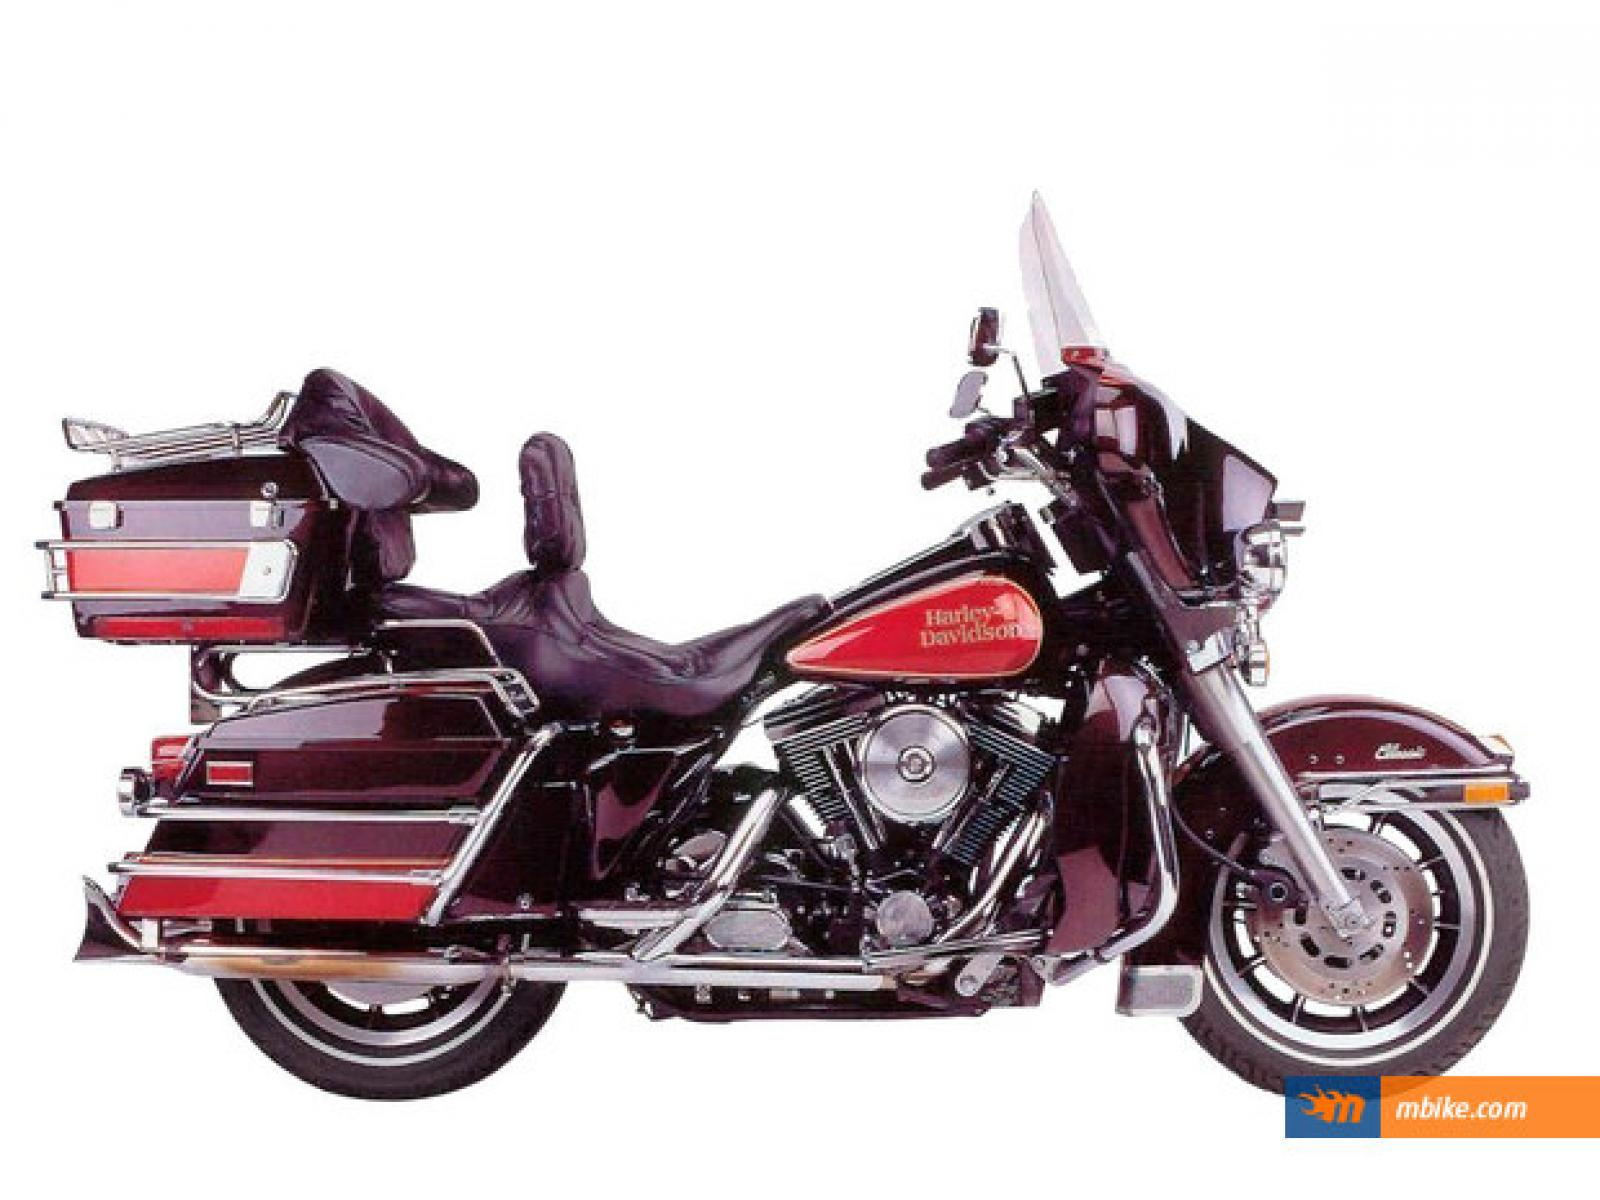 Harley-Davidson FLHTC 1340 Electra Glide Classic 1985 pics #15276